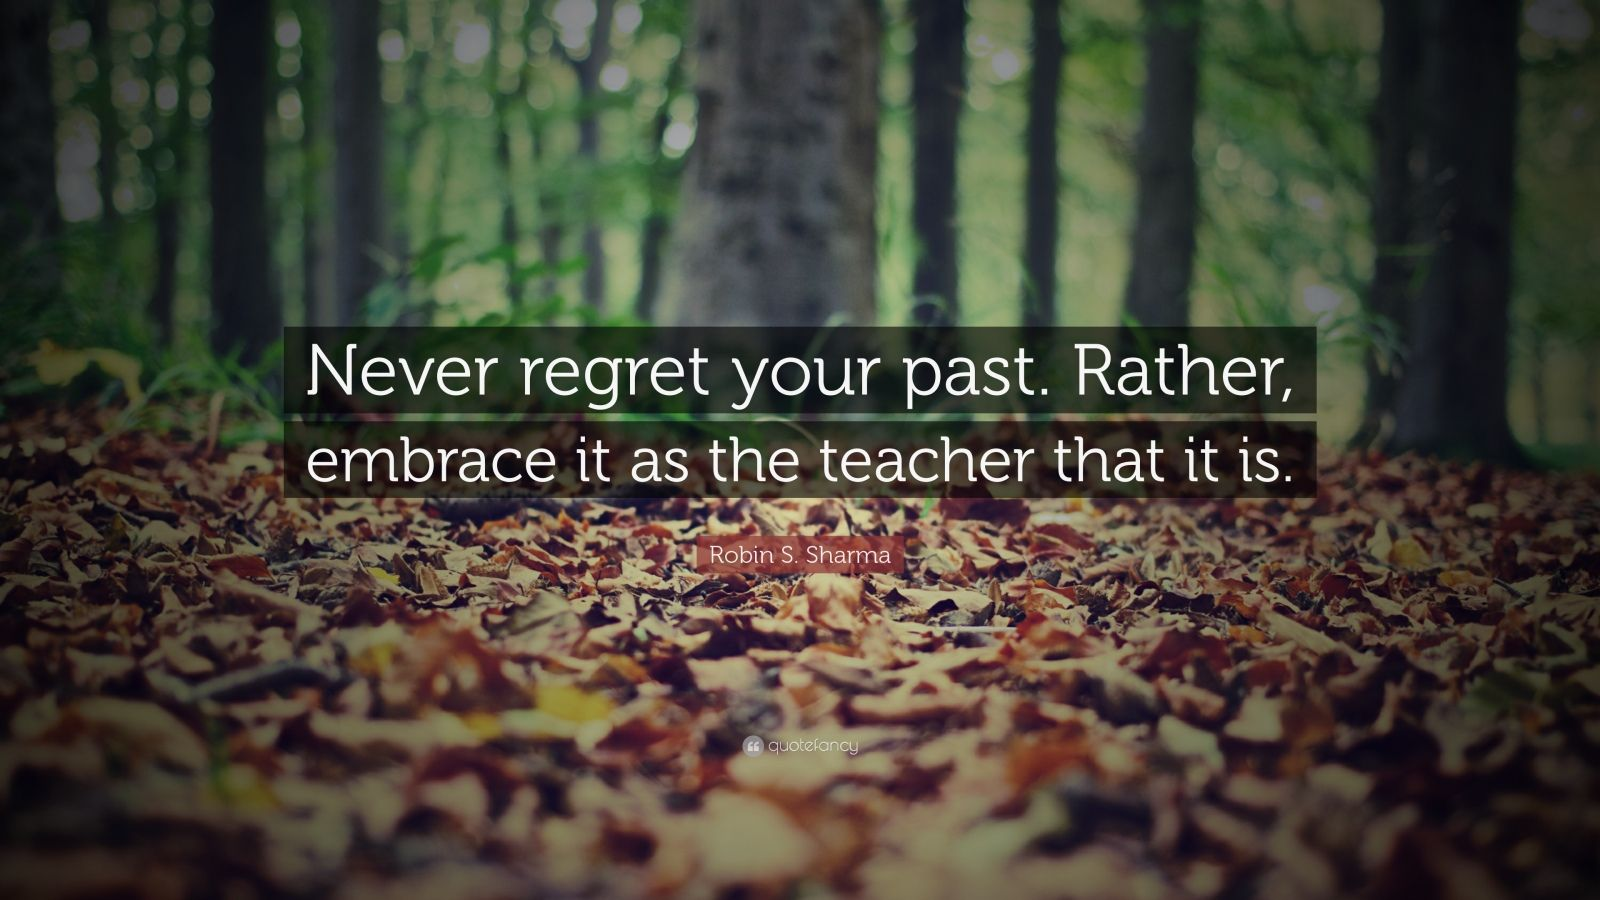 Napoleon Hill Quotes Wallpaper Robin S Sharma Quote Never Regret Your Past Rather